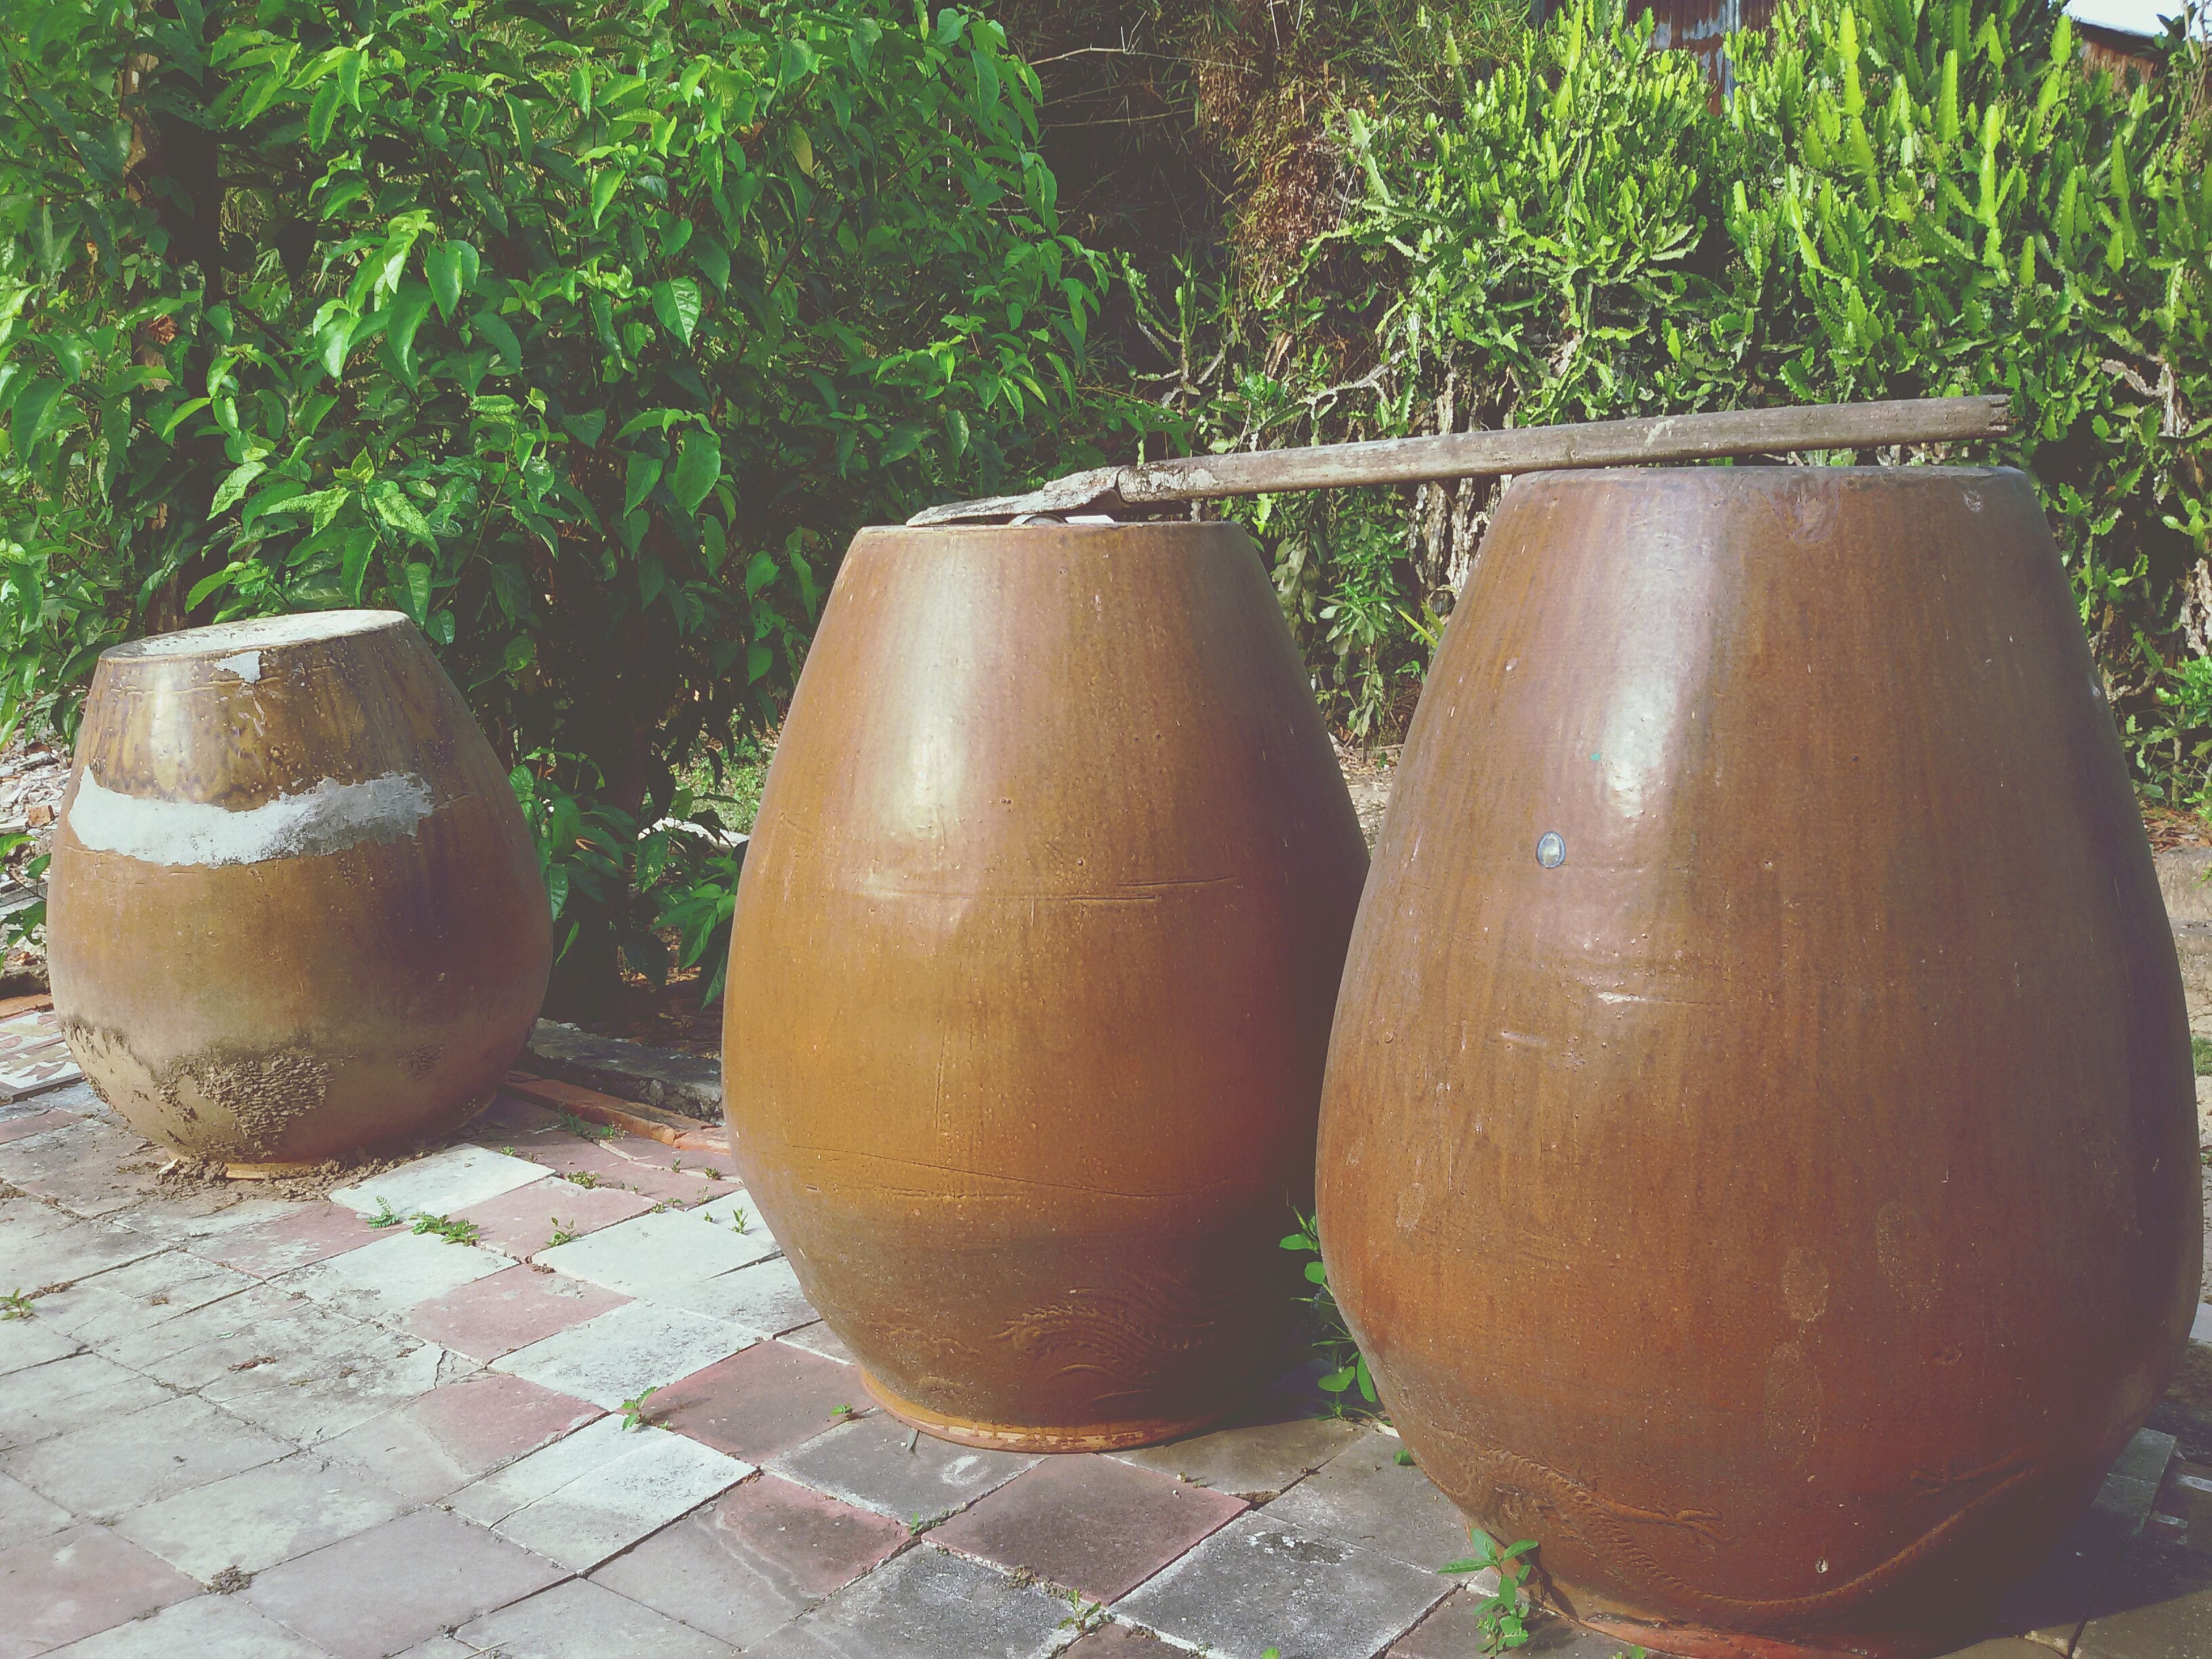 still life, food and drink, plant, potted plant, growth, no people, high angle view, day, close-up, outdoors, green color, freshness, side by side, container, metal, table, cobblestone, arrangement, front or back yard, sunlight